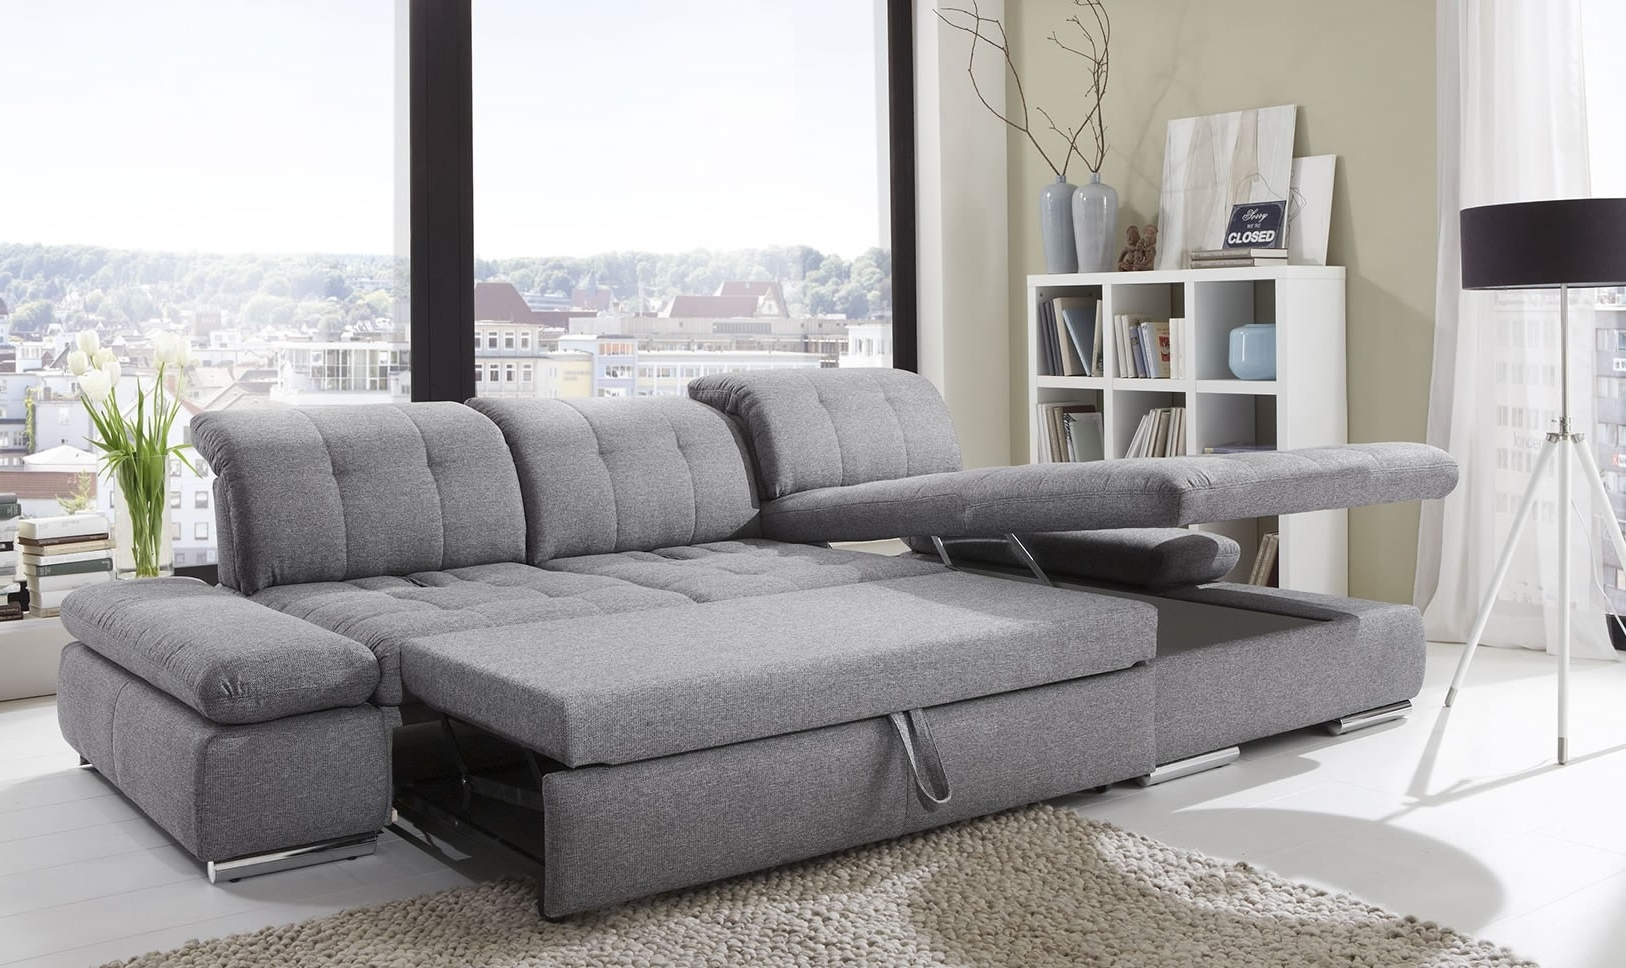 Alpine Sectional Sleeper Sofa, Left Arm Chaise Facing, Black With Regard To Newest Chaise Sleeper Sofas (View 11 of 15)